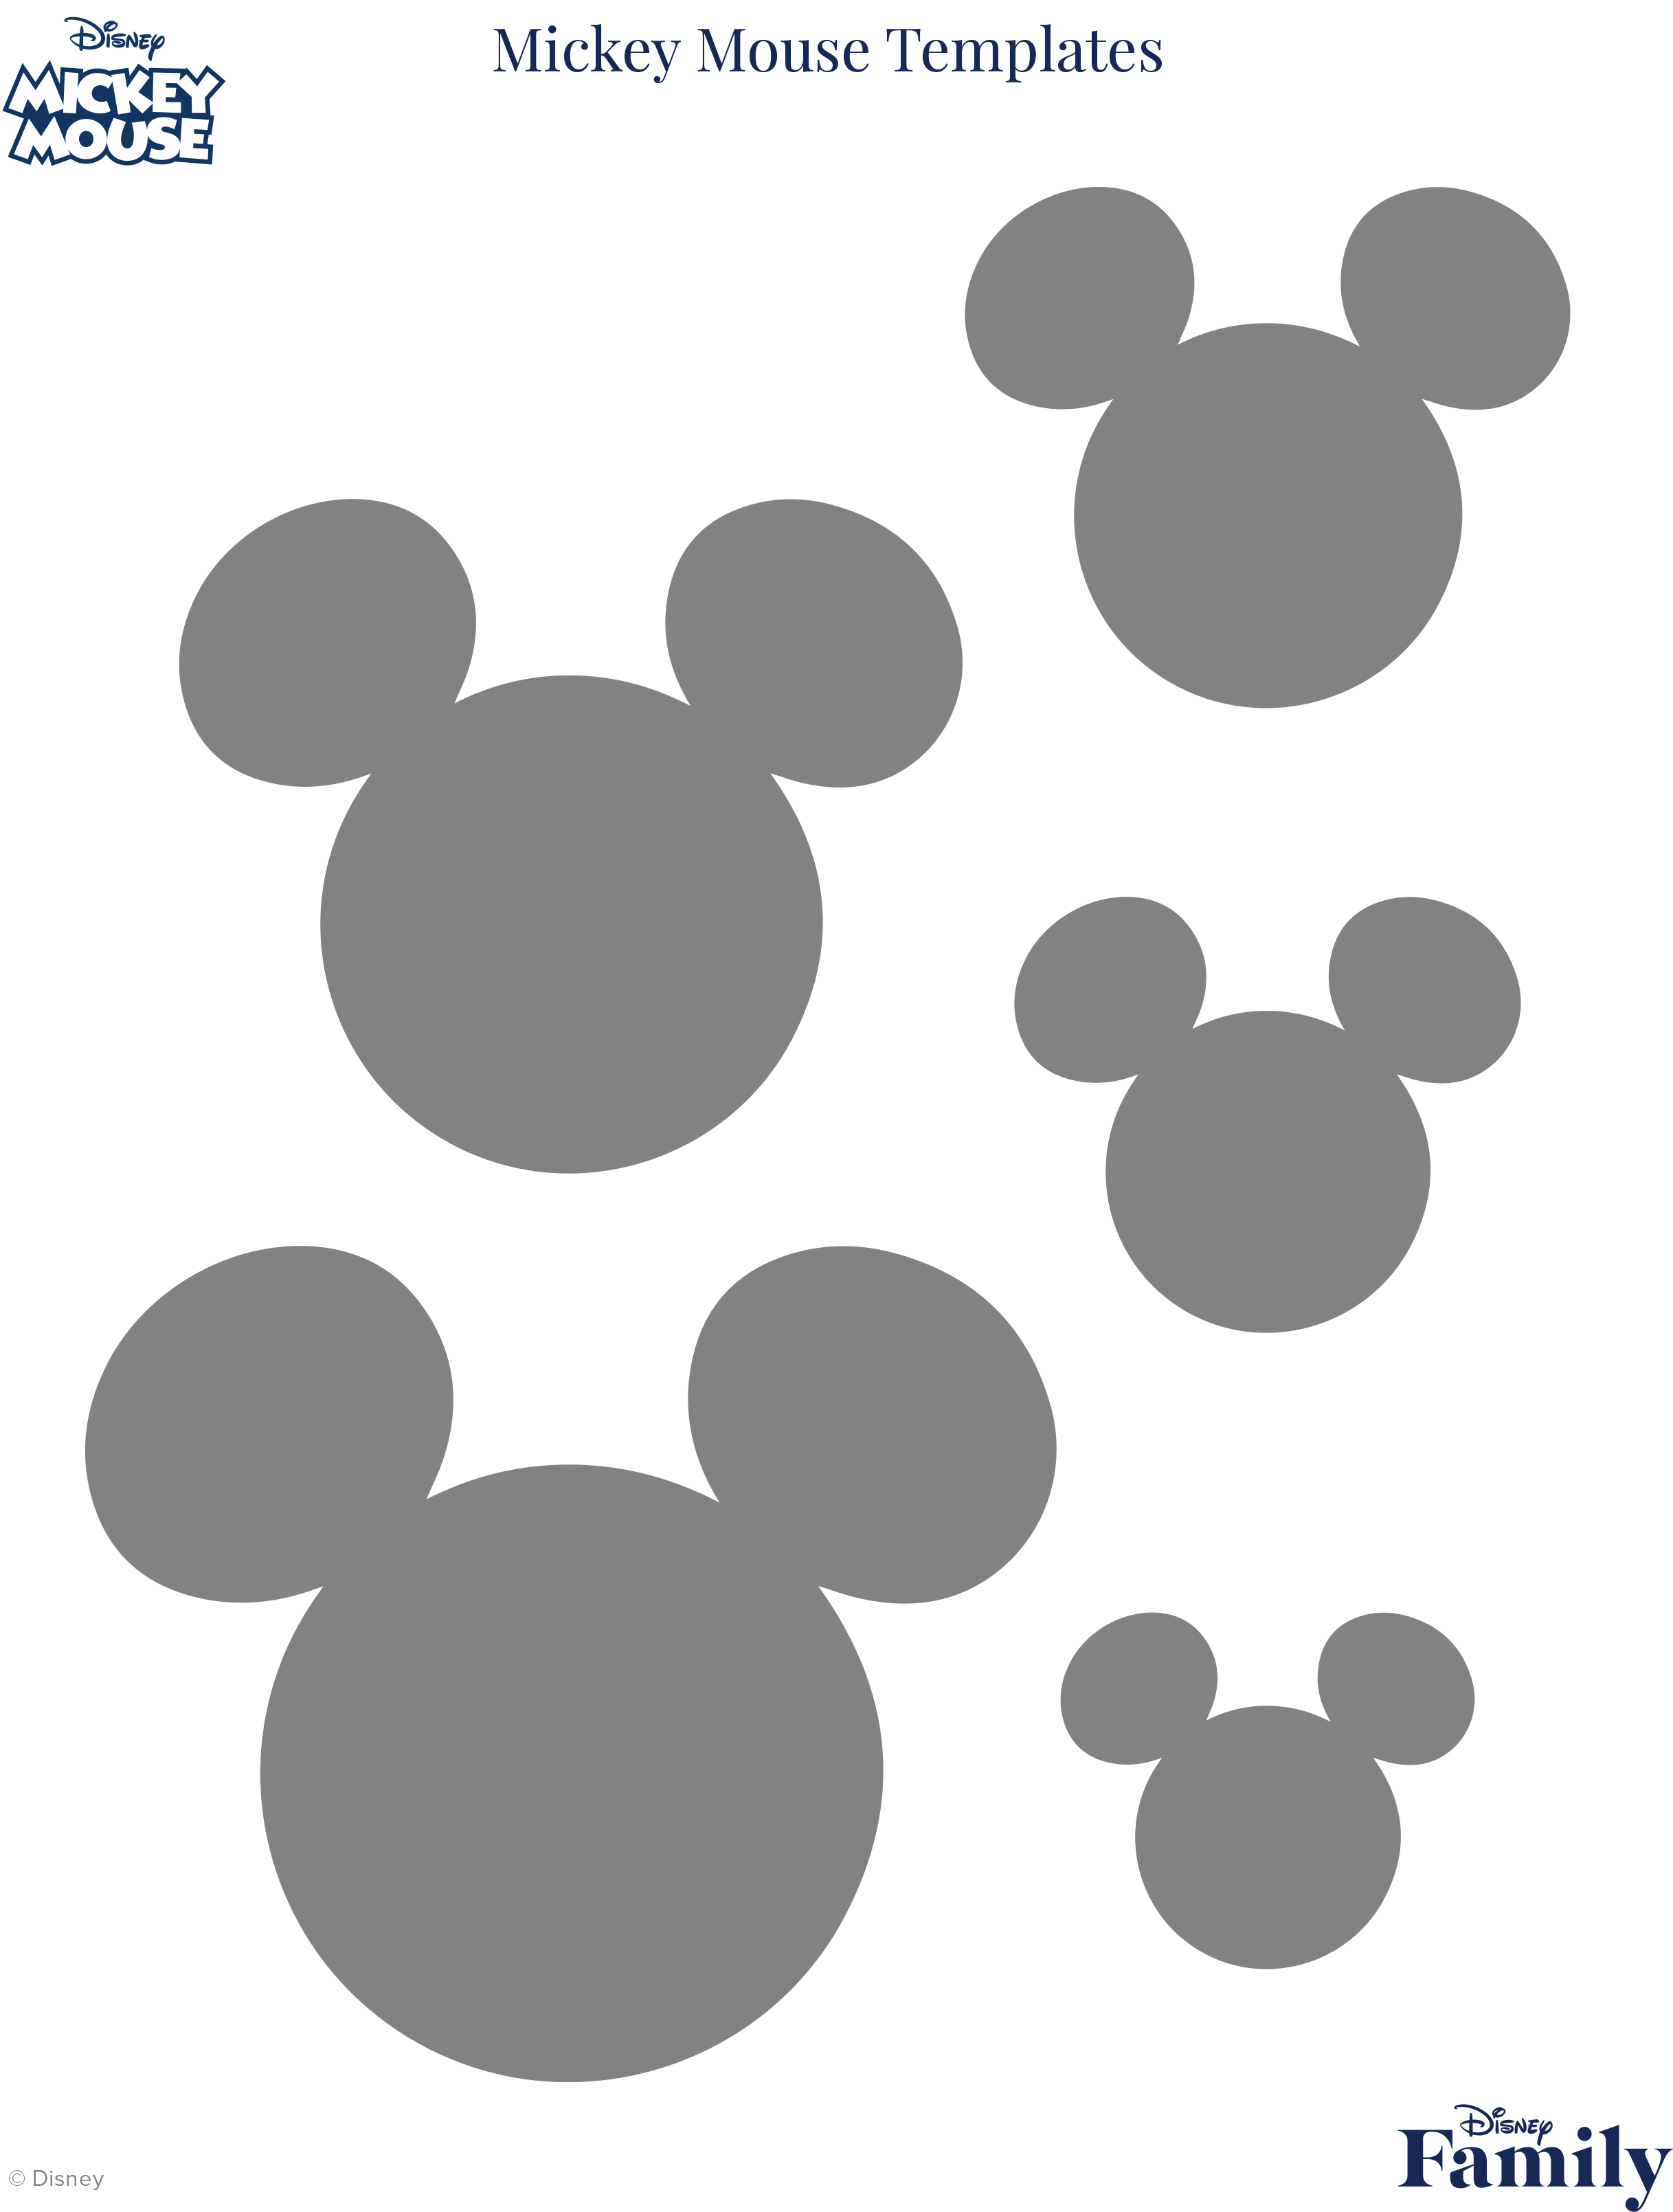 Mickey Mouse Template | Disney Family - Free Printable Mickey Mouse Template